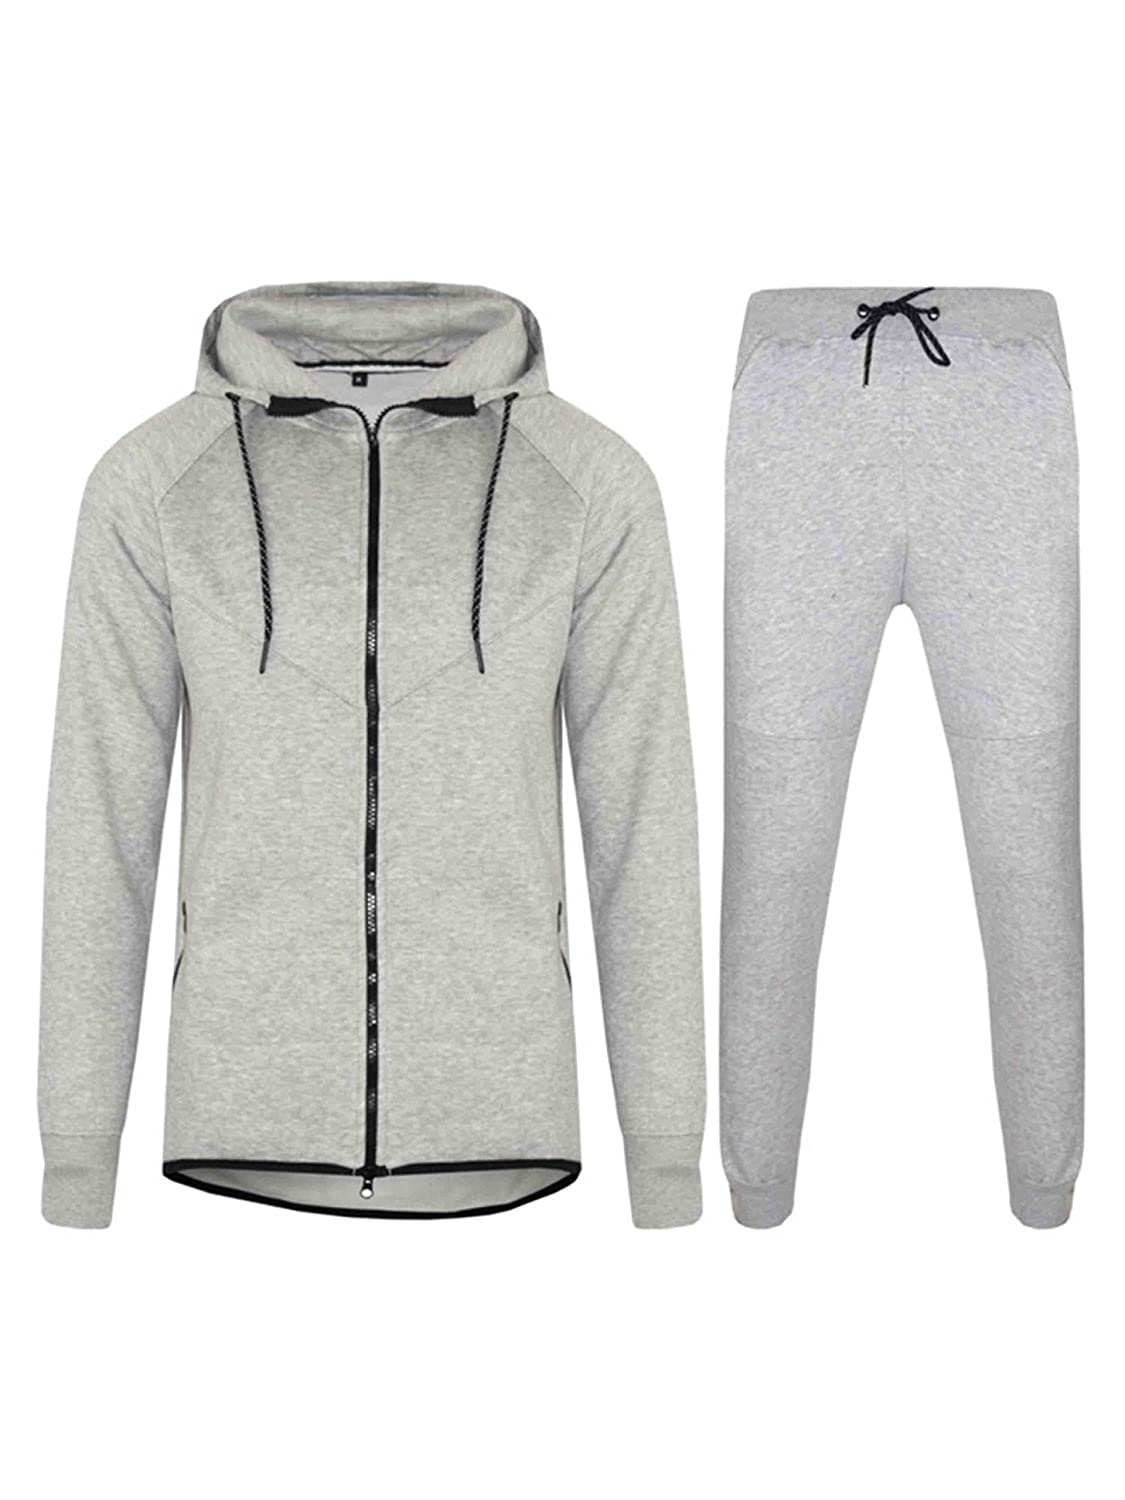 Men Tracksuit Set Fleece Hoodie Bottom Jogger Kids Contrast Cord Gym Active wear Love My Fashions